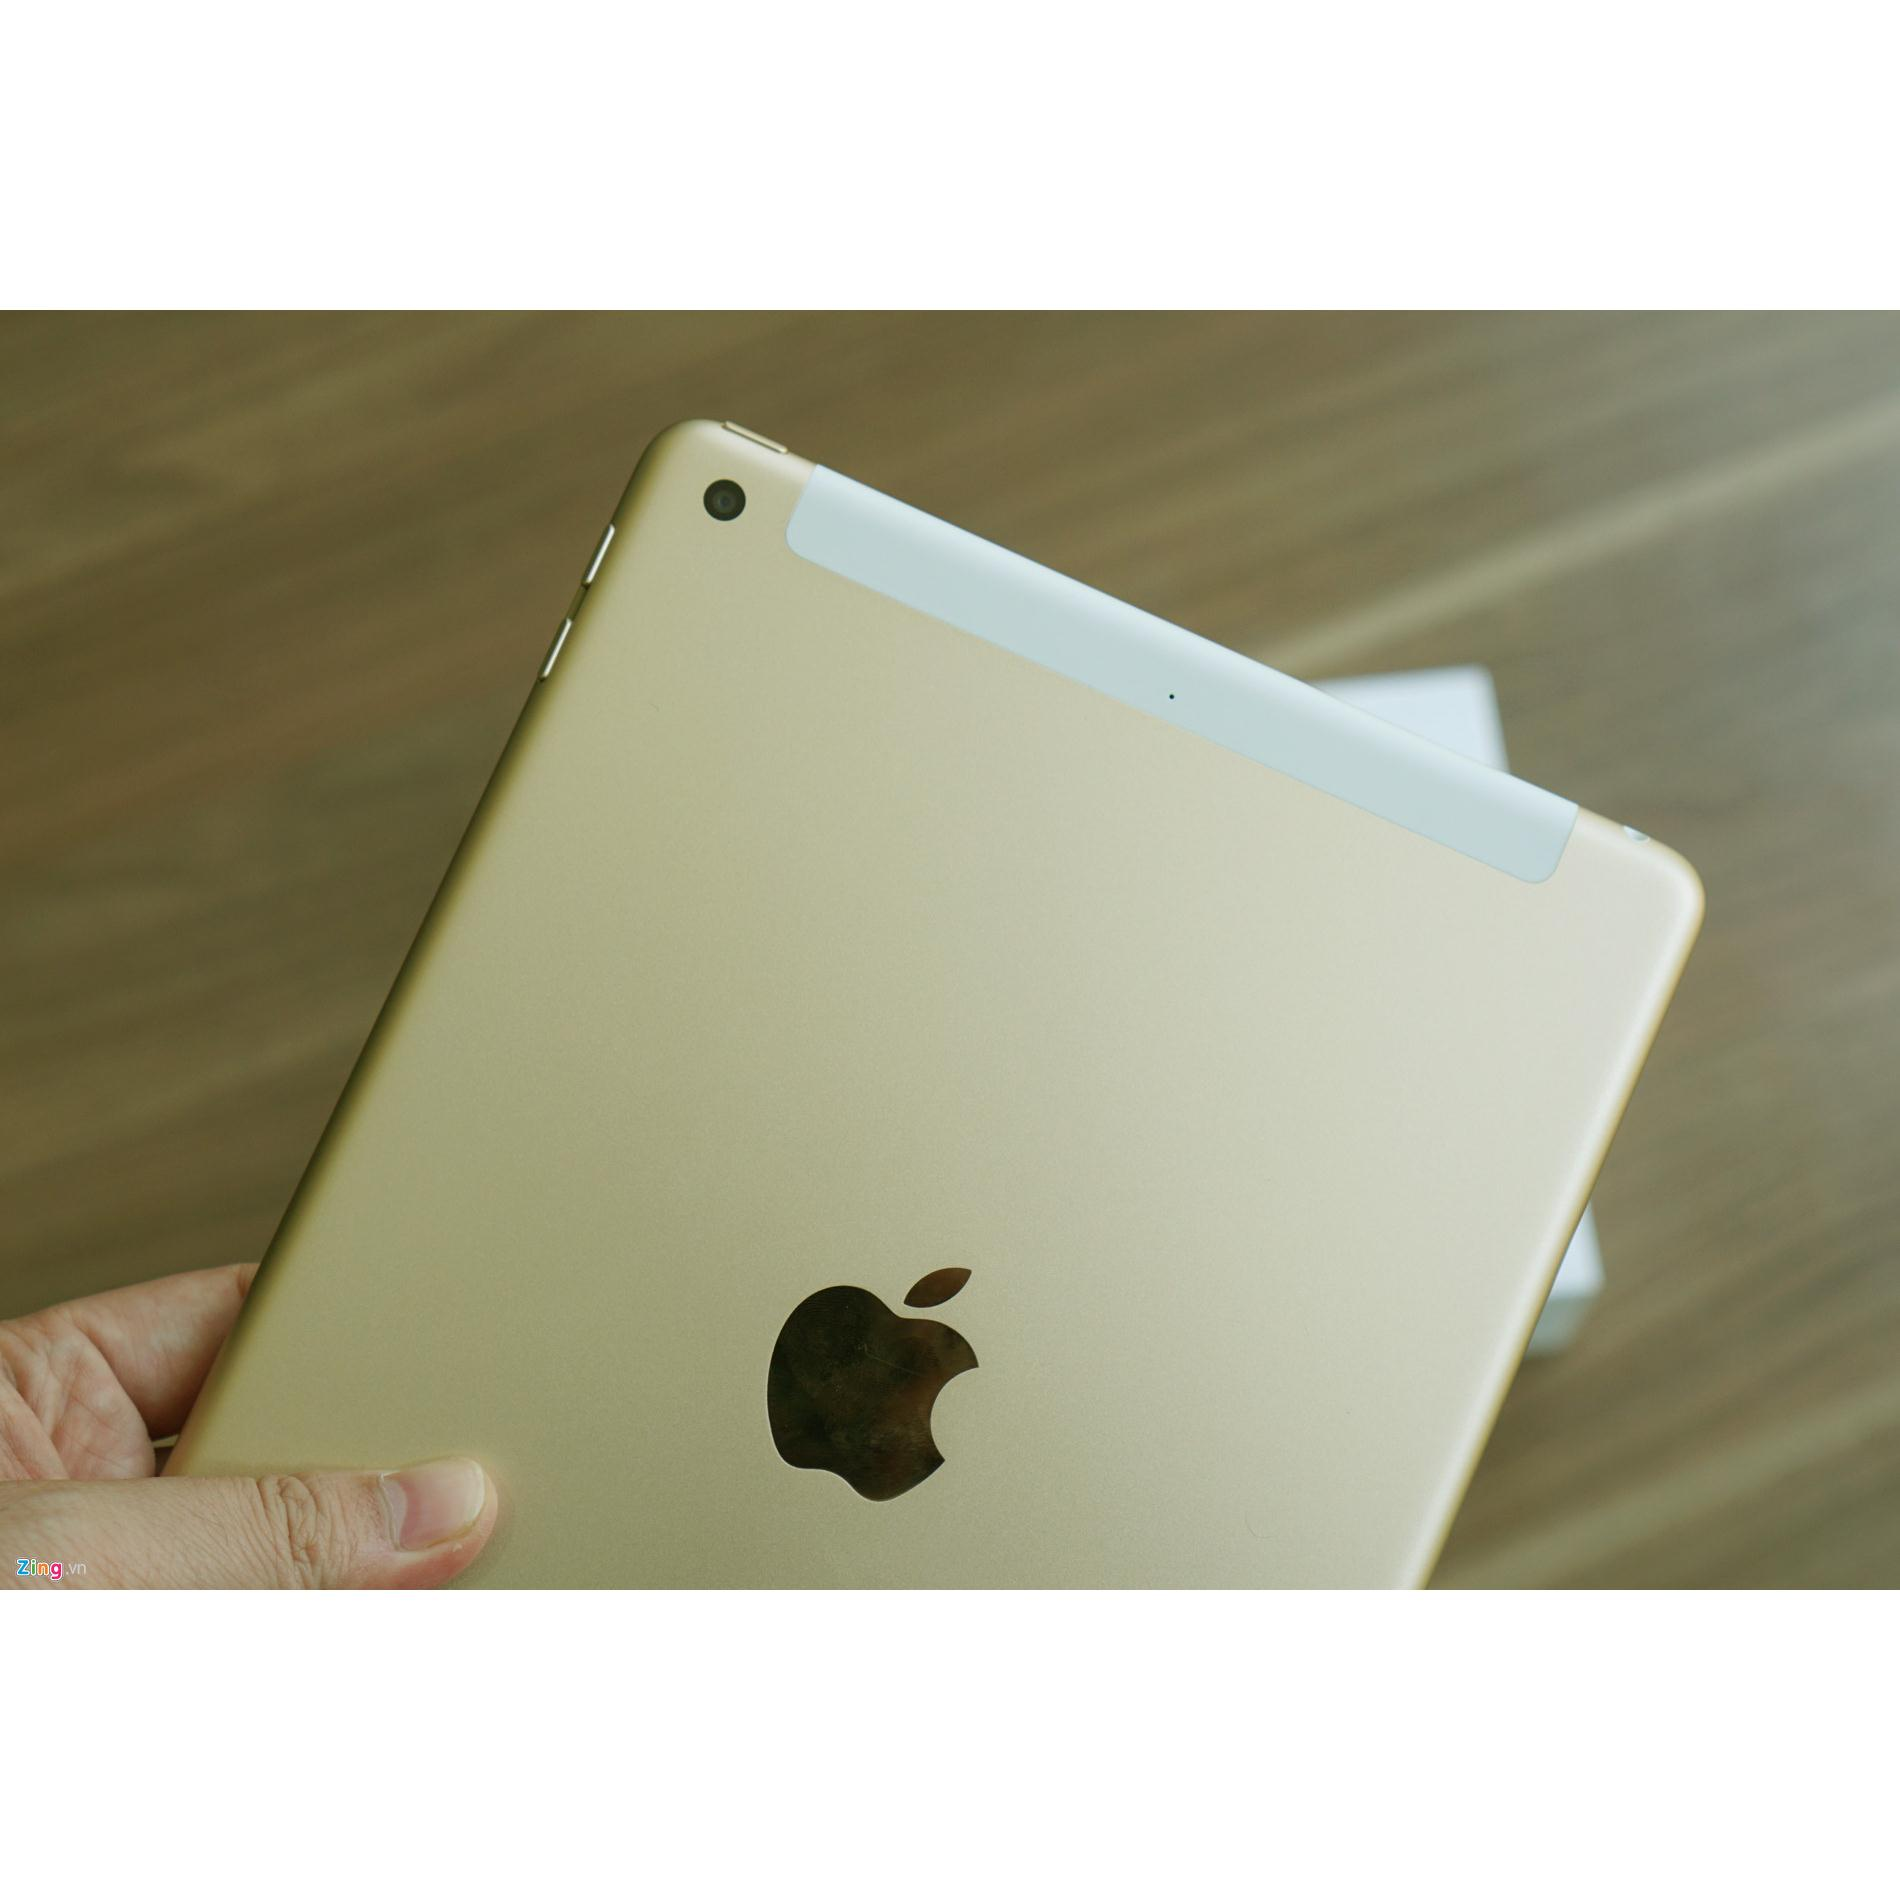 ipad-2017-128g-4g-wifi-gray-siver-gold-99